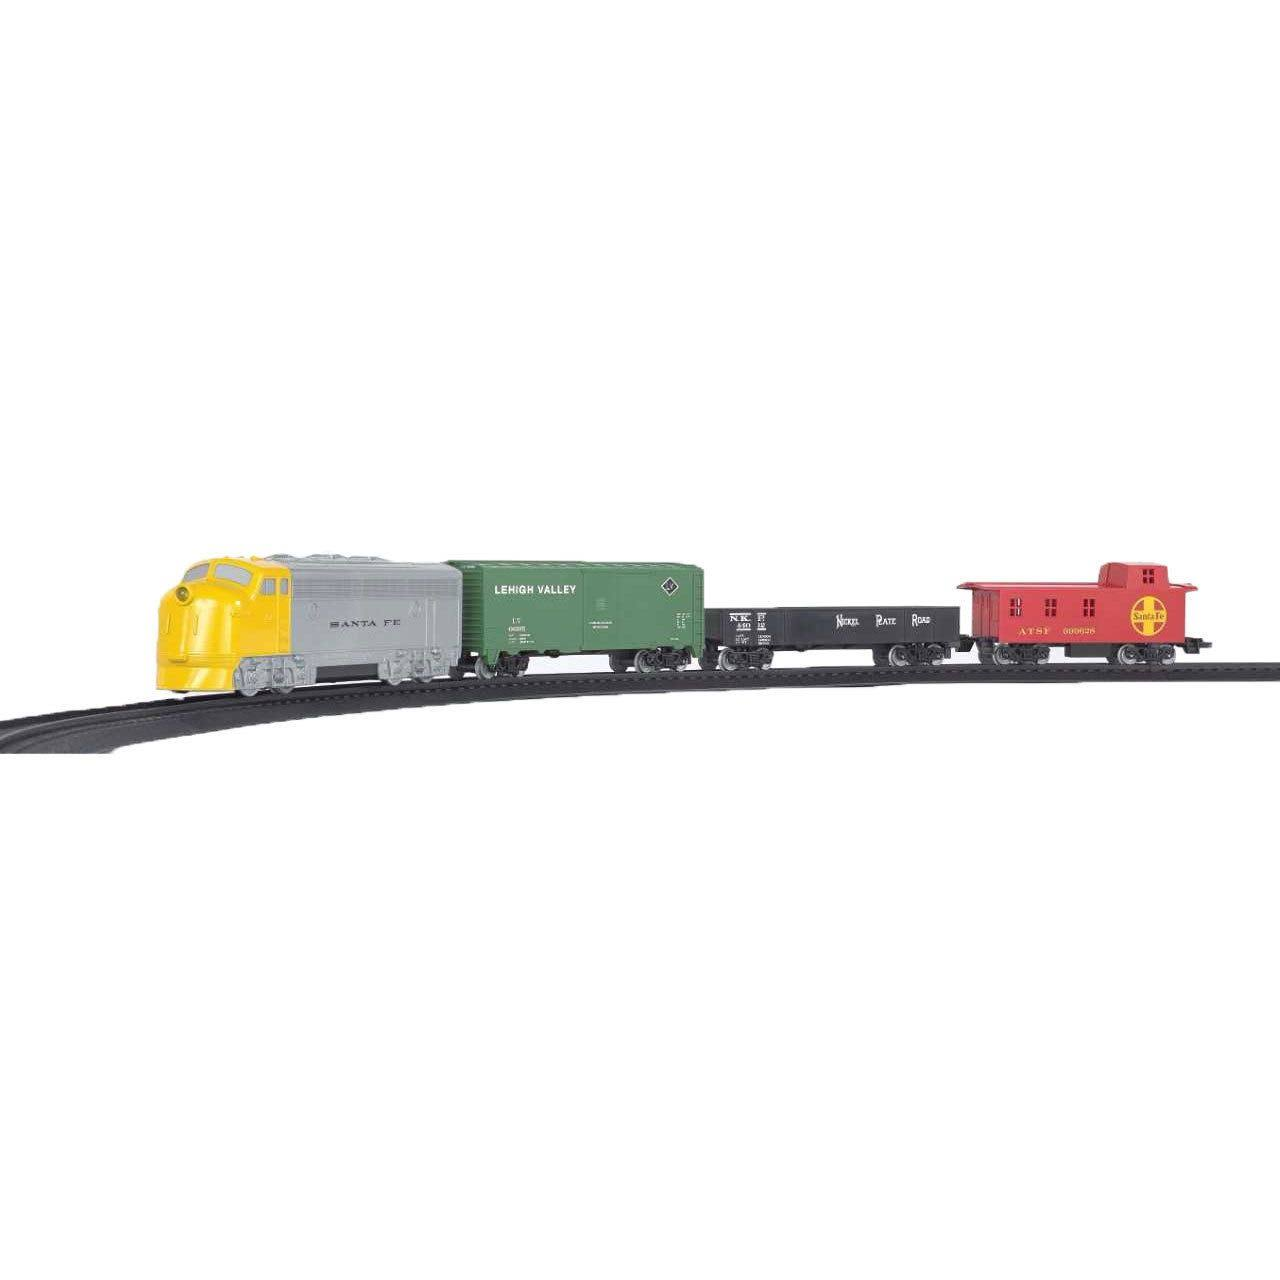 Bachmann Industries HO Scale Battery Operated Rail Express Train Set, Yellow